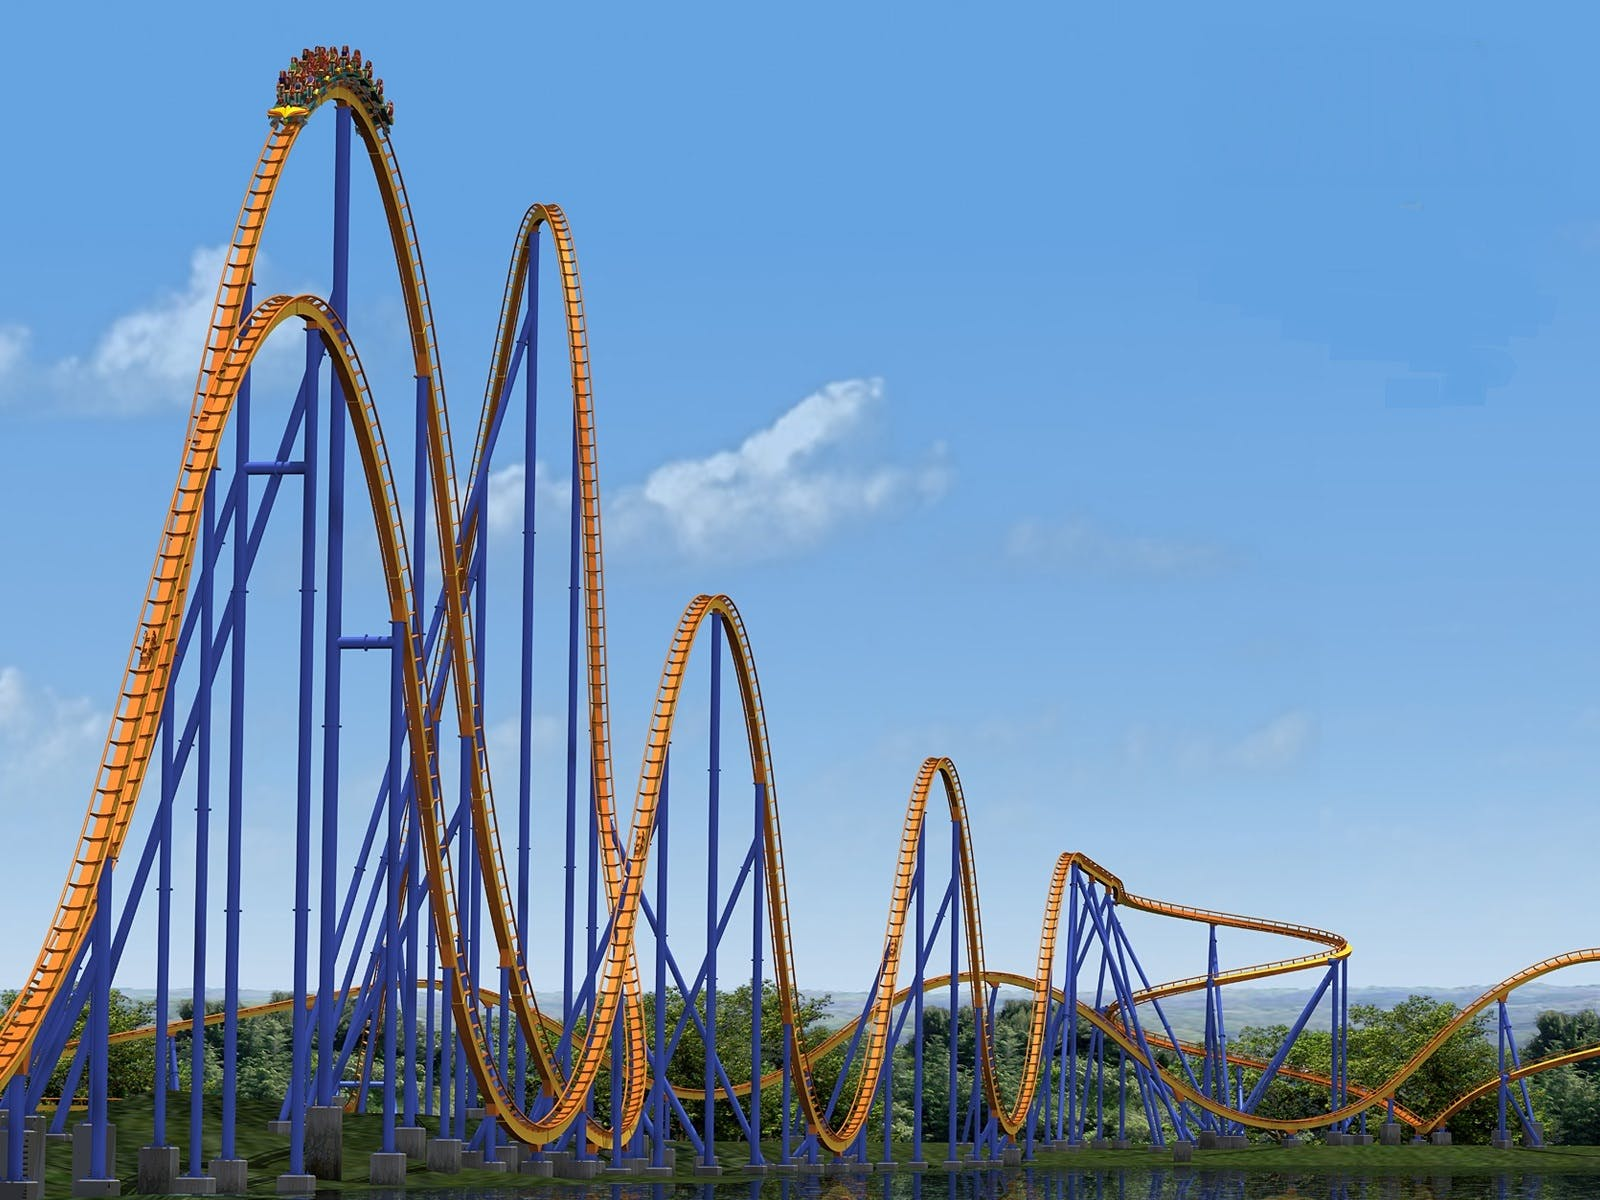 The 10 Craziest Roller Coaster Rides for Thrill Seekers | Brit + Co